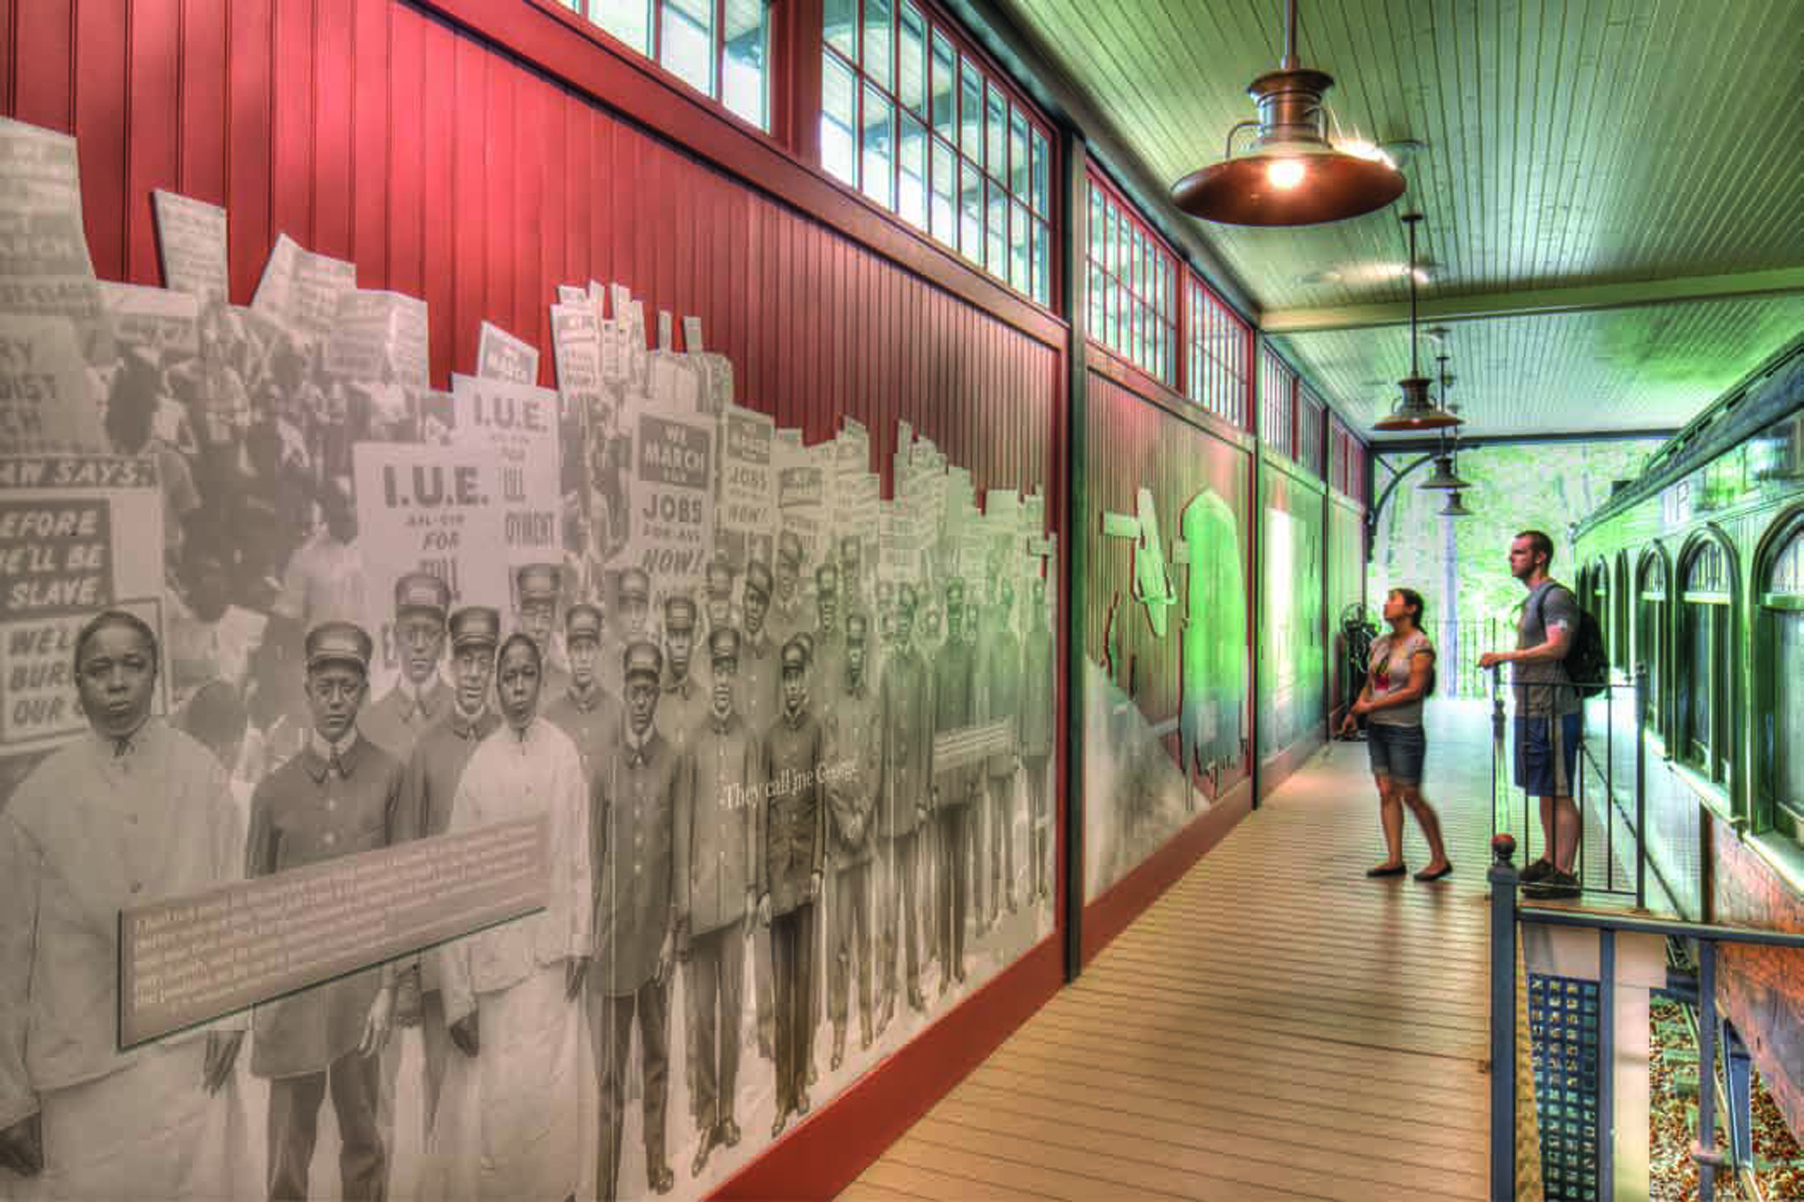 Two people stand in a long hallways viewing an exhibit about the Pullman porters on the wall.